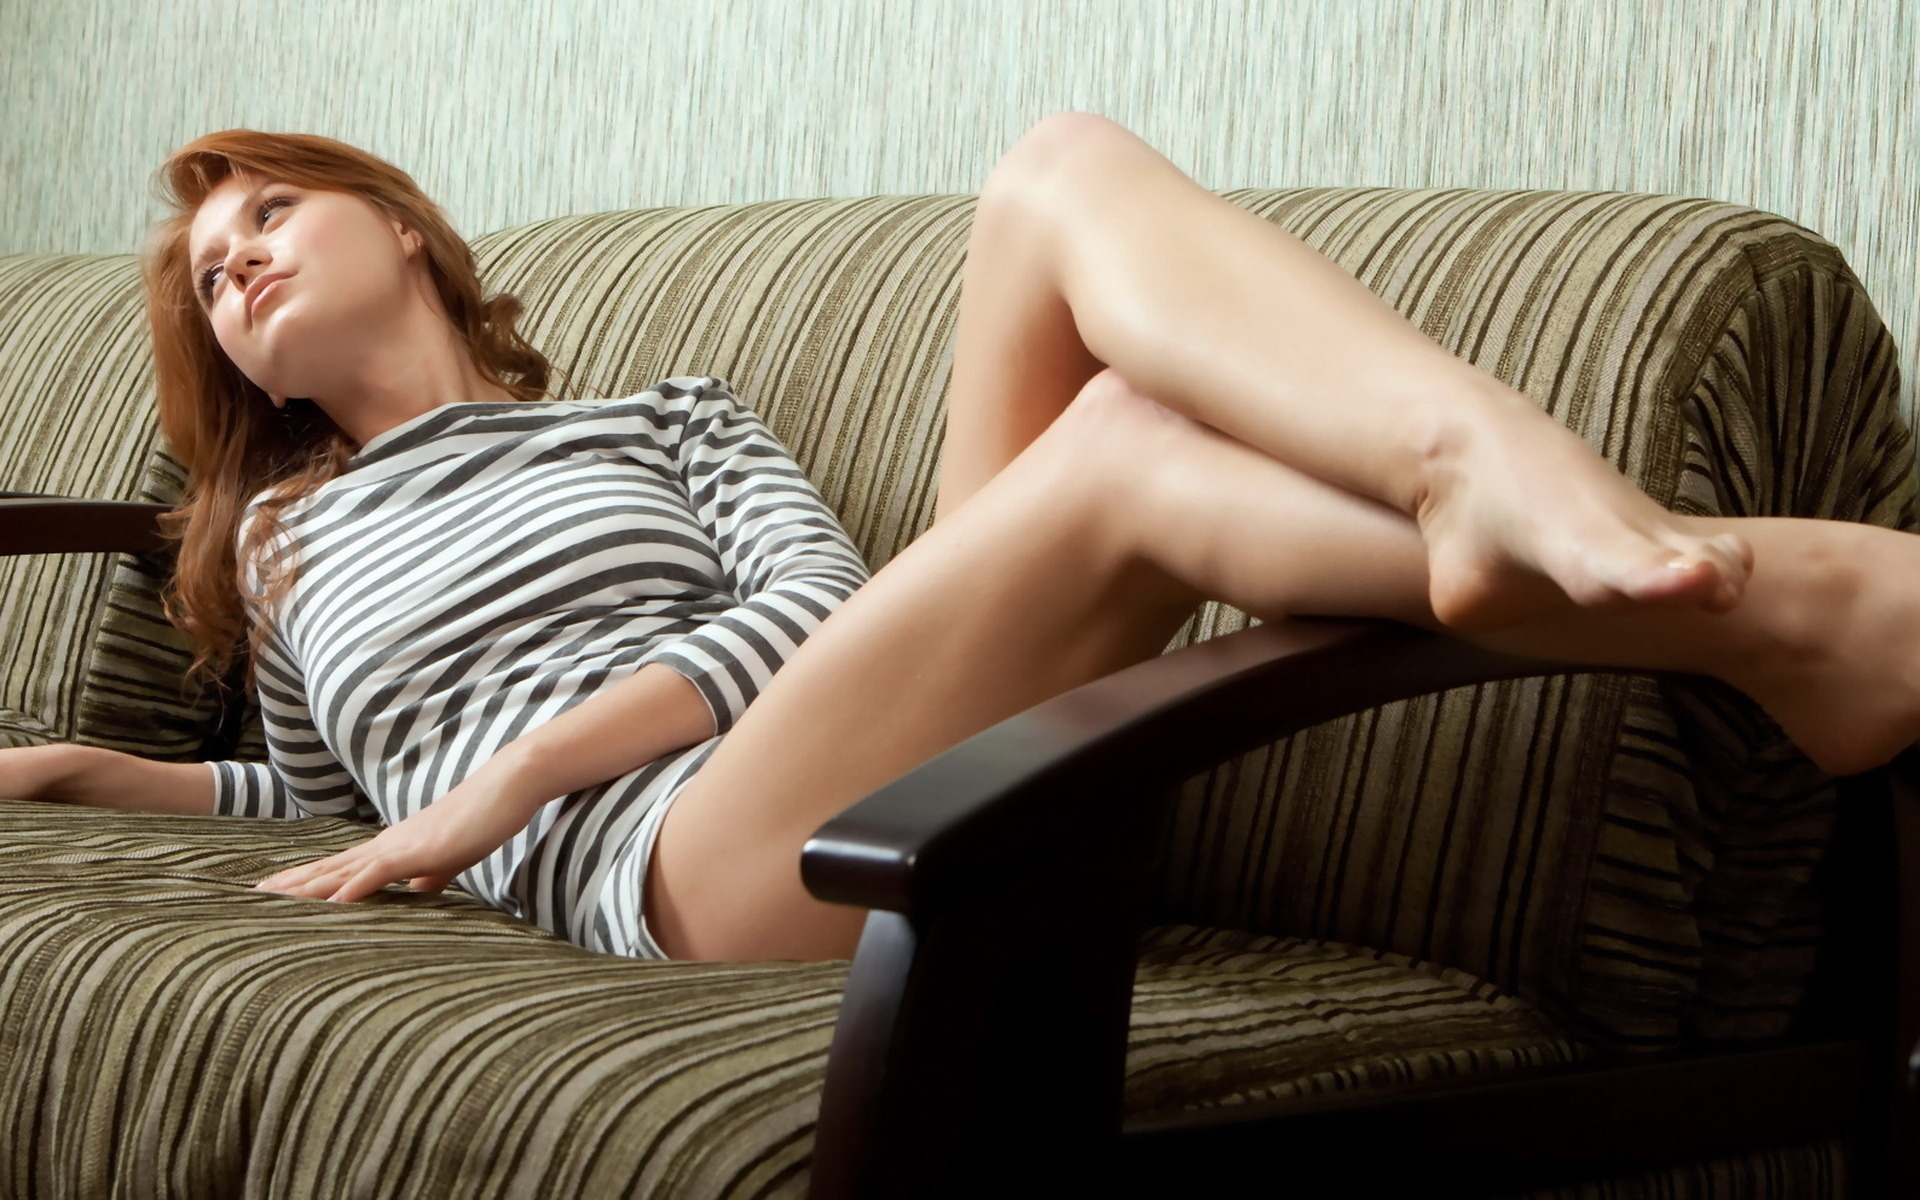 legs woman couch redheads HD Wallpaper